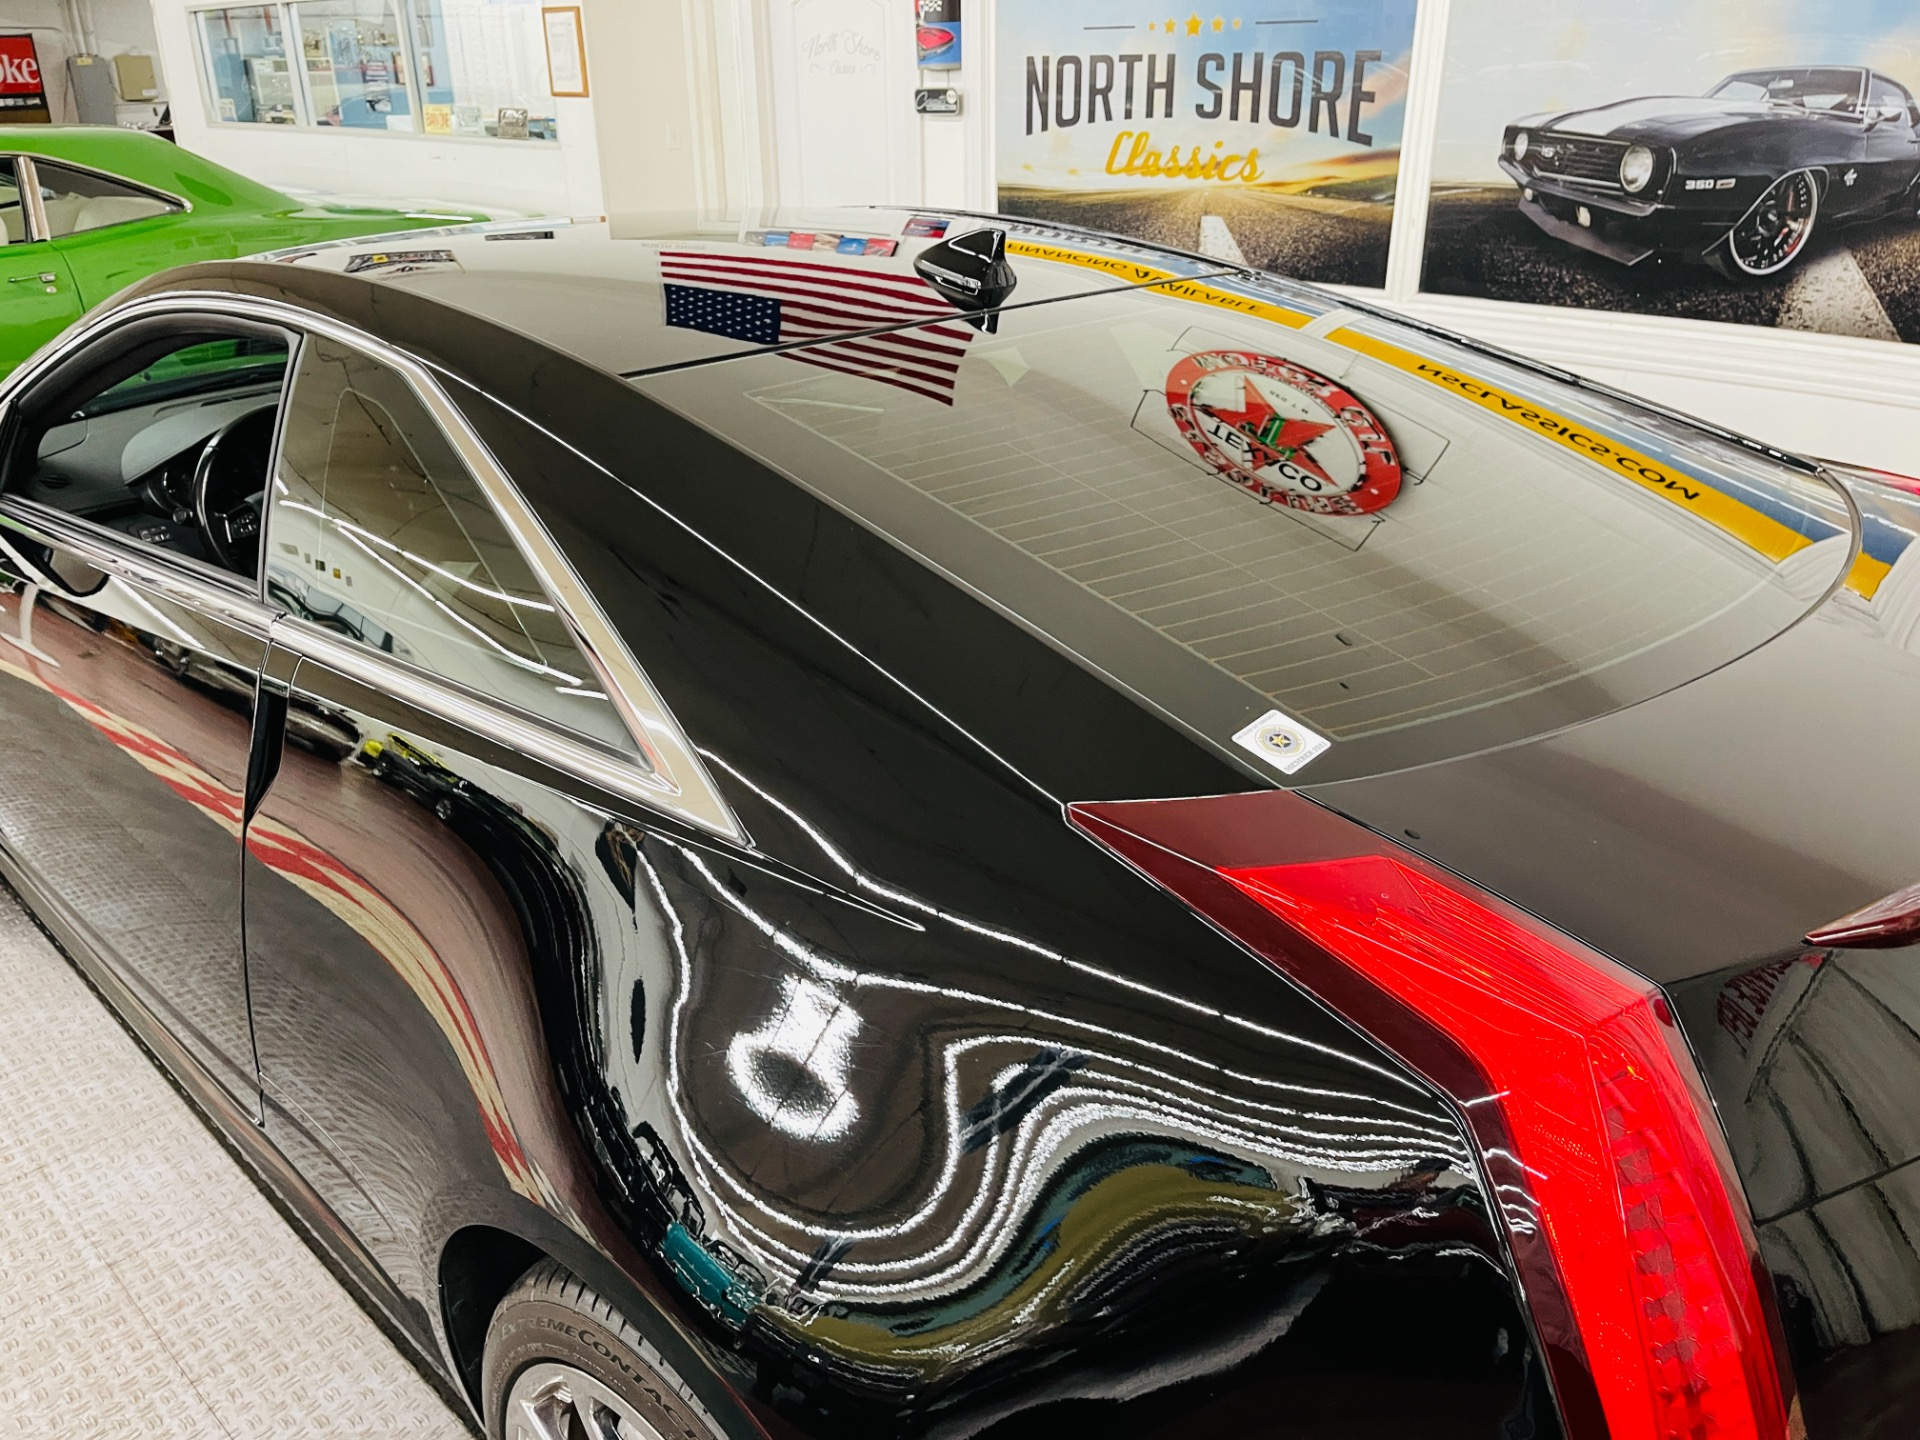 Used 2011 Cadillac CTS-V - LOW MILES - SUPERCHARGED - SUPER CLEAN - SEE VIDEO   Mundelein, IL